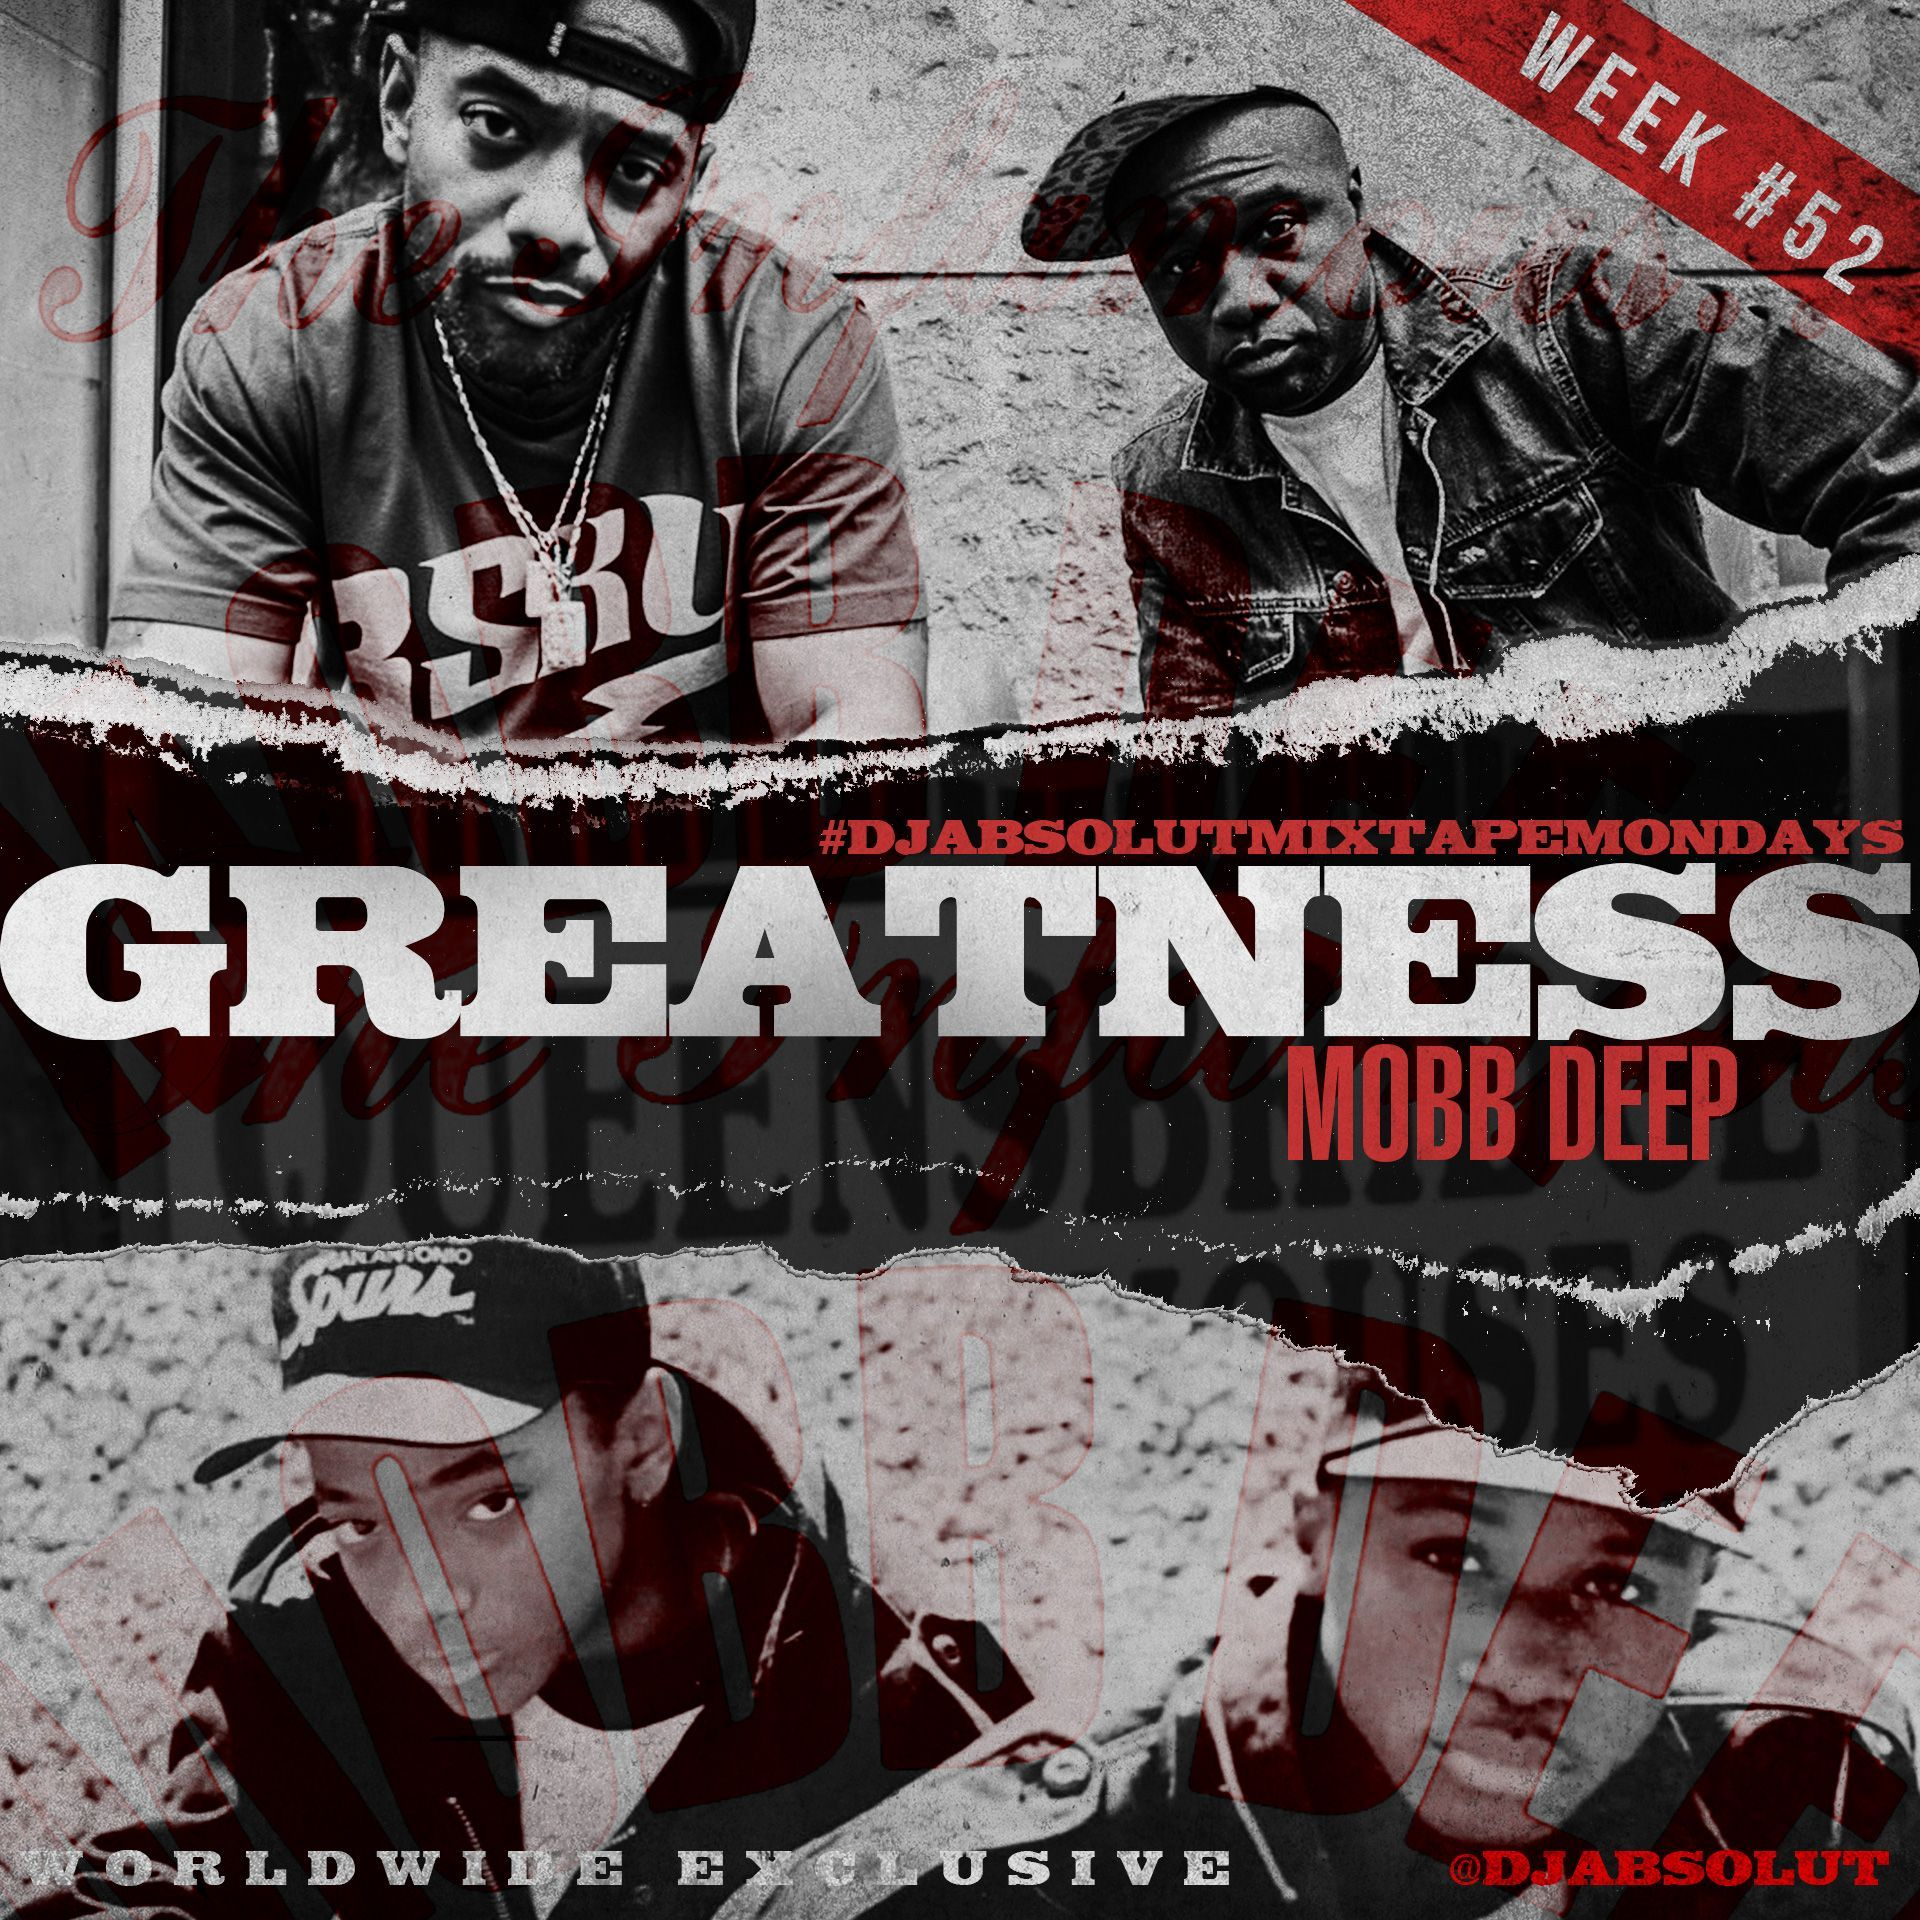 Listen: Mobb Deep – 'Greatness' (Unreleased in 2019 | MUSIC